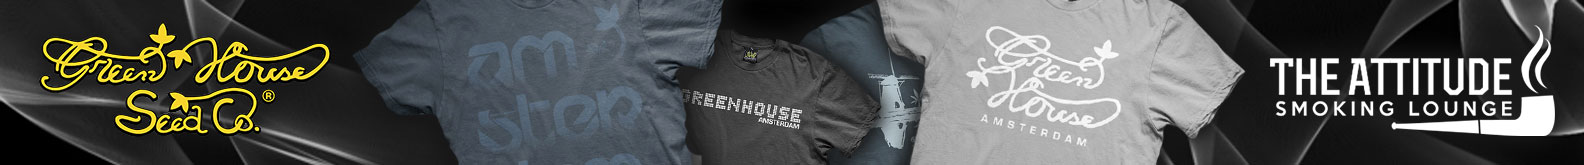 Green House Clothing